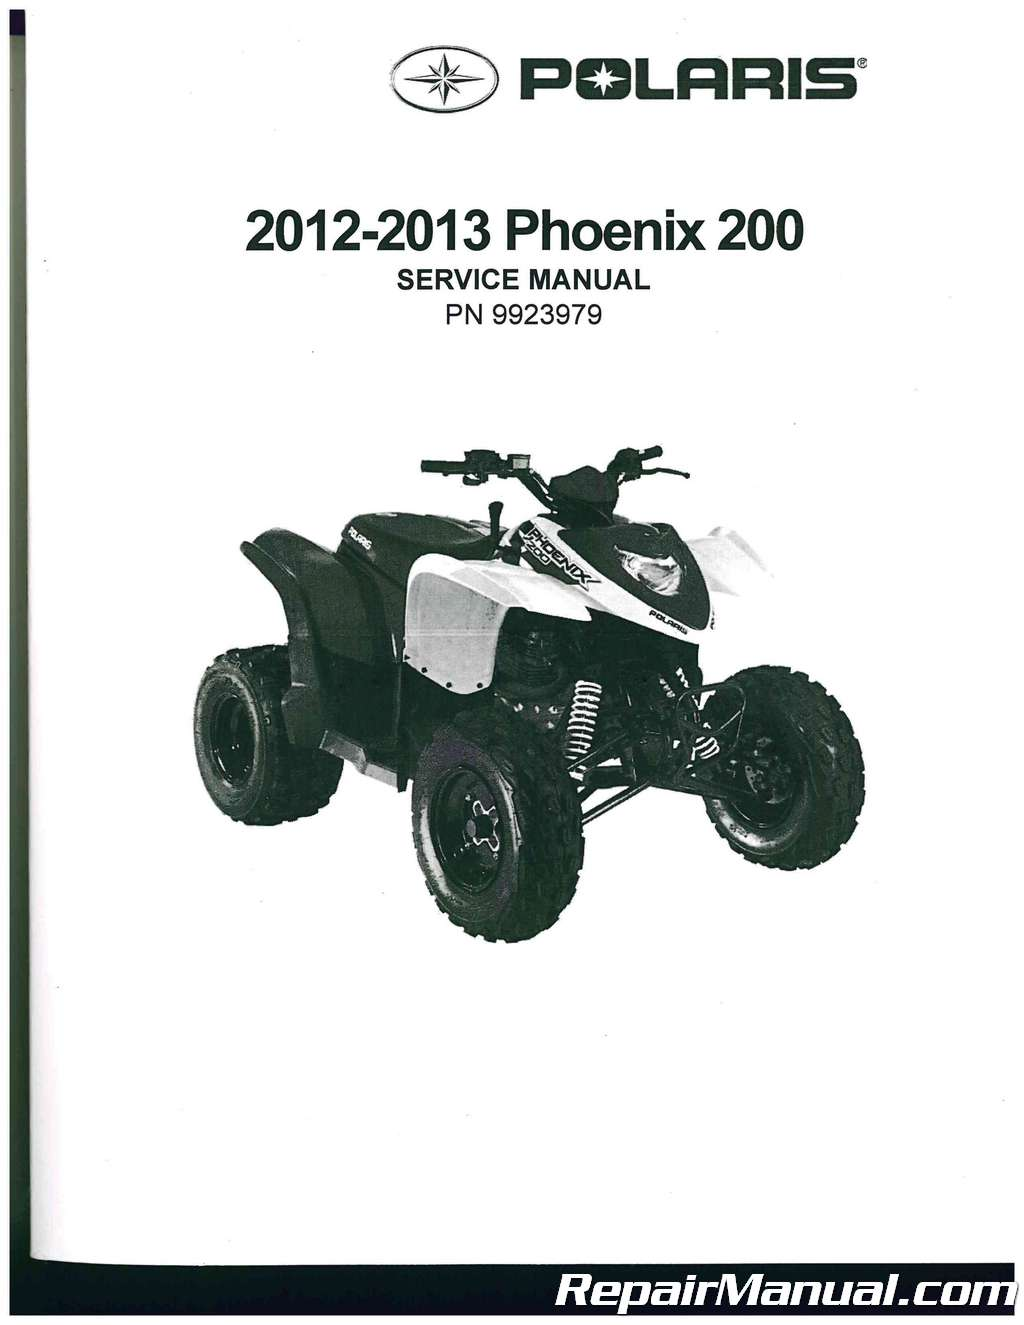 2012 2013 polaris phoenix 200 service manual rh repairmanual com polaris phoenix 200 repair manual polaris phoenix 200 parts manual